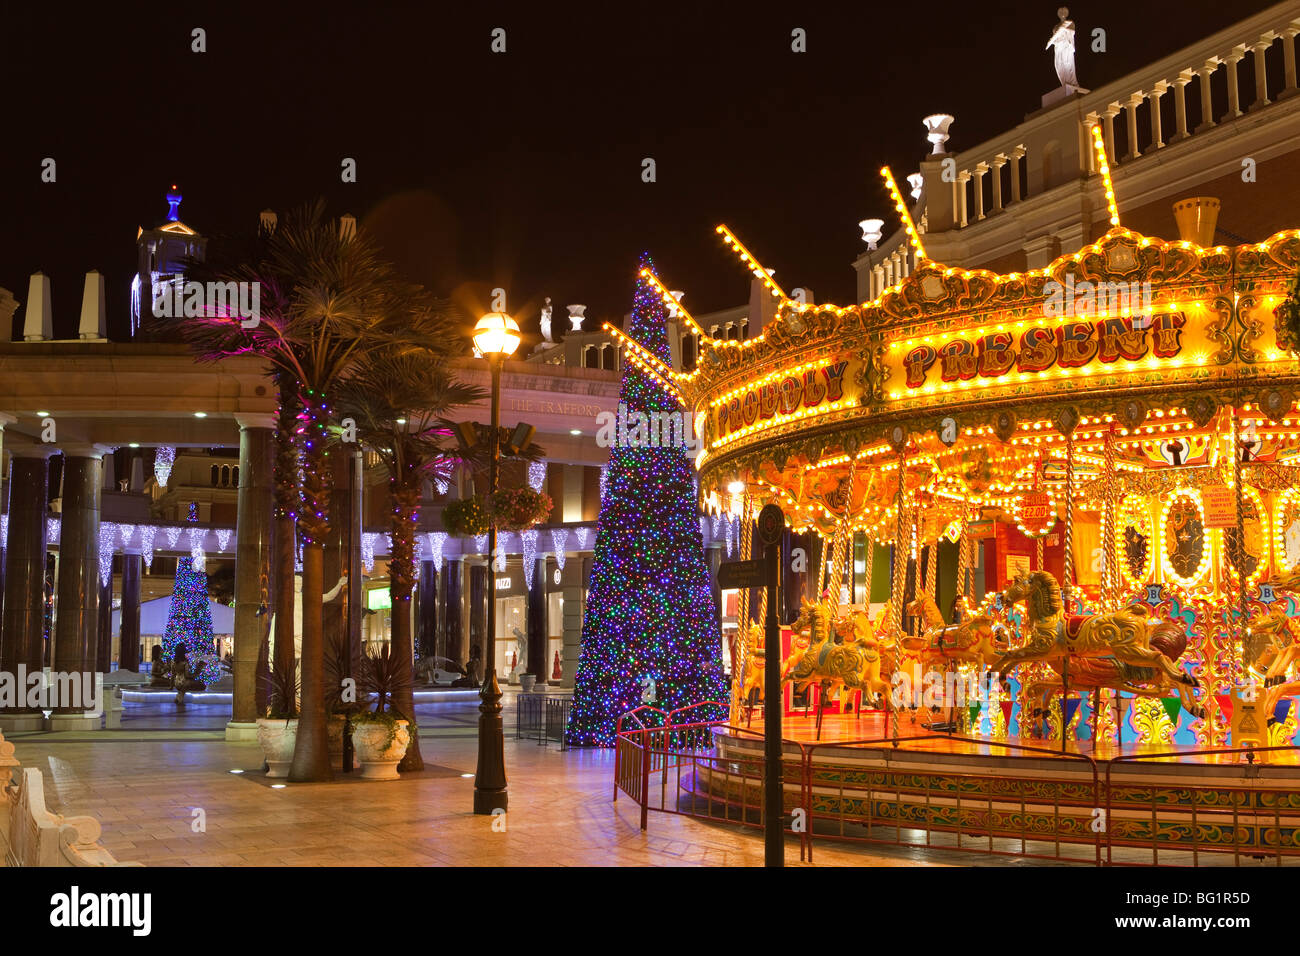 UK, England, Manchester, Trafford Centre shopping mall, Barton Square, traditional carousel and Christmas tree - Stock Image